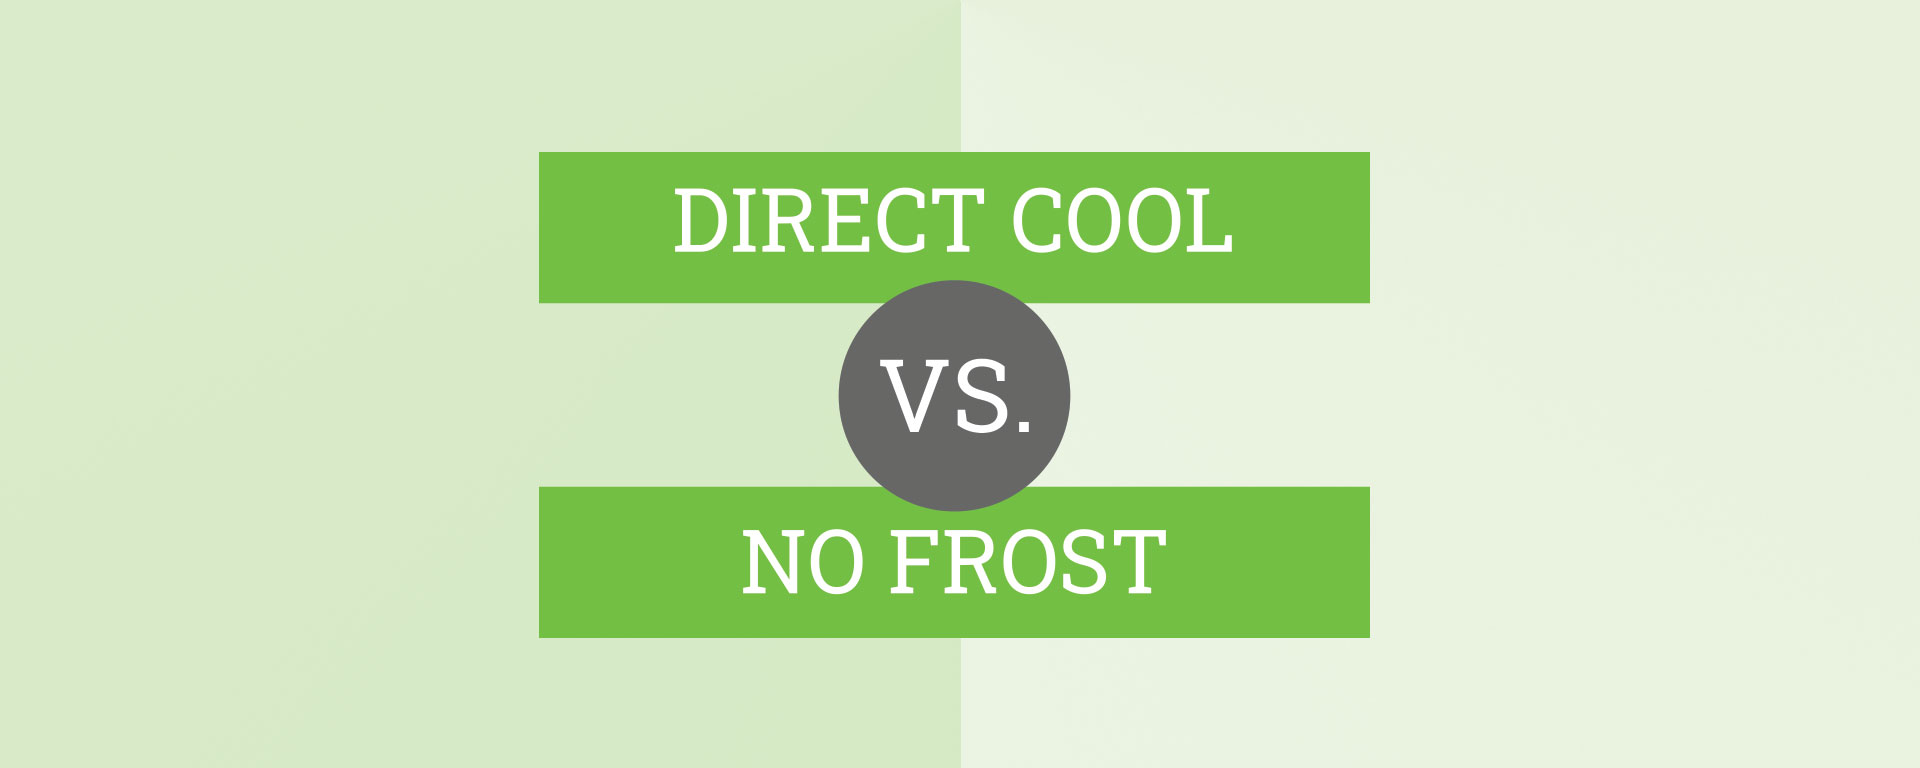 direct cool vs. no frost